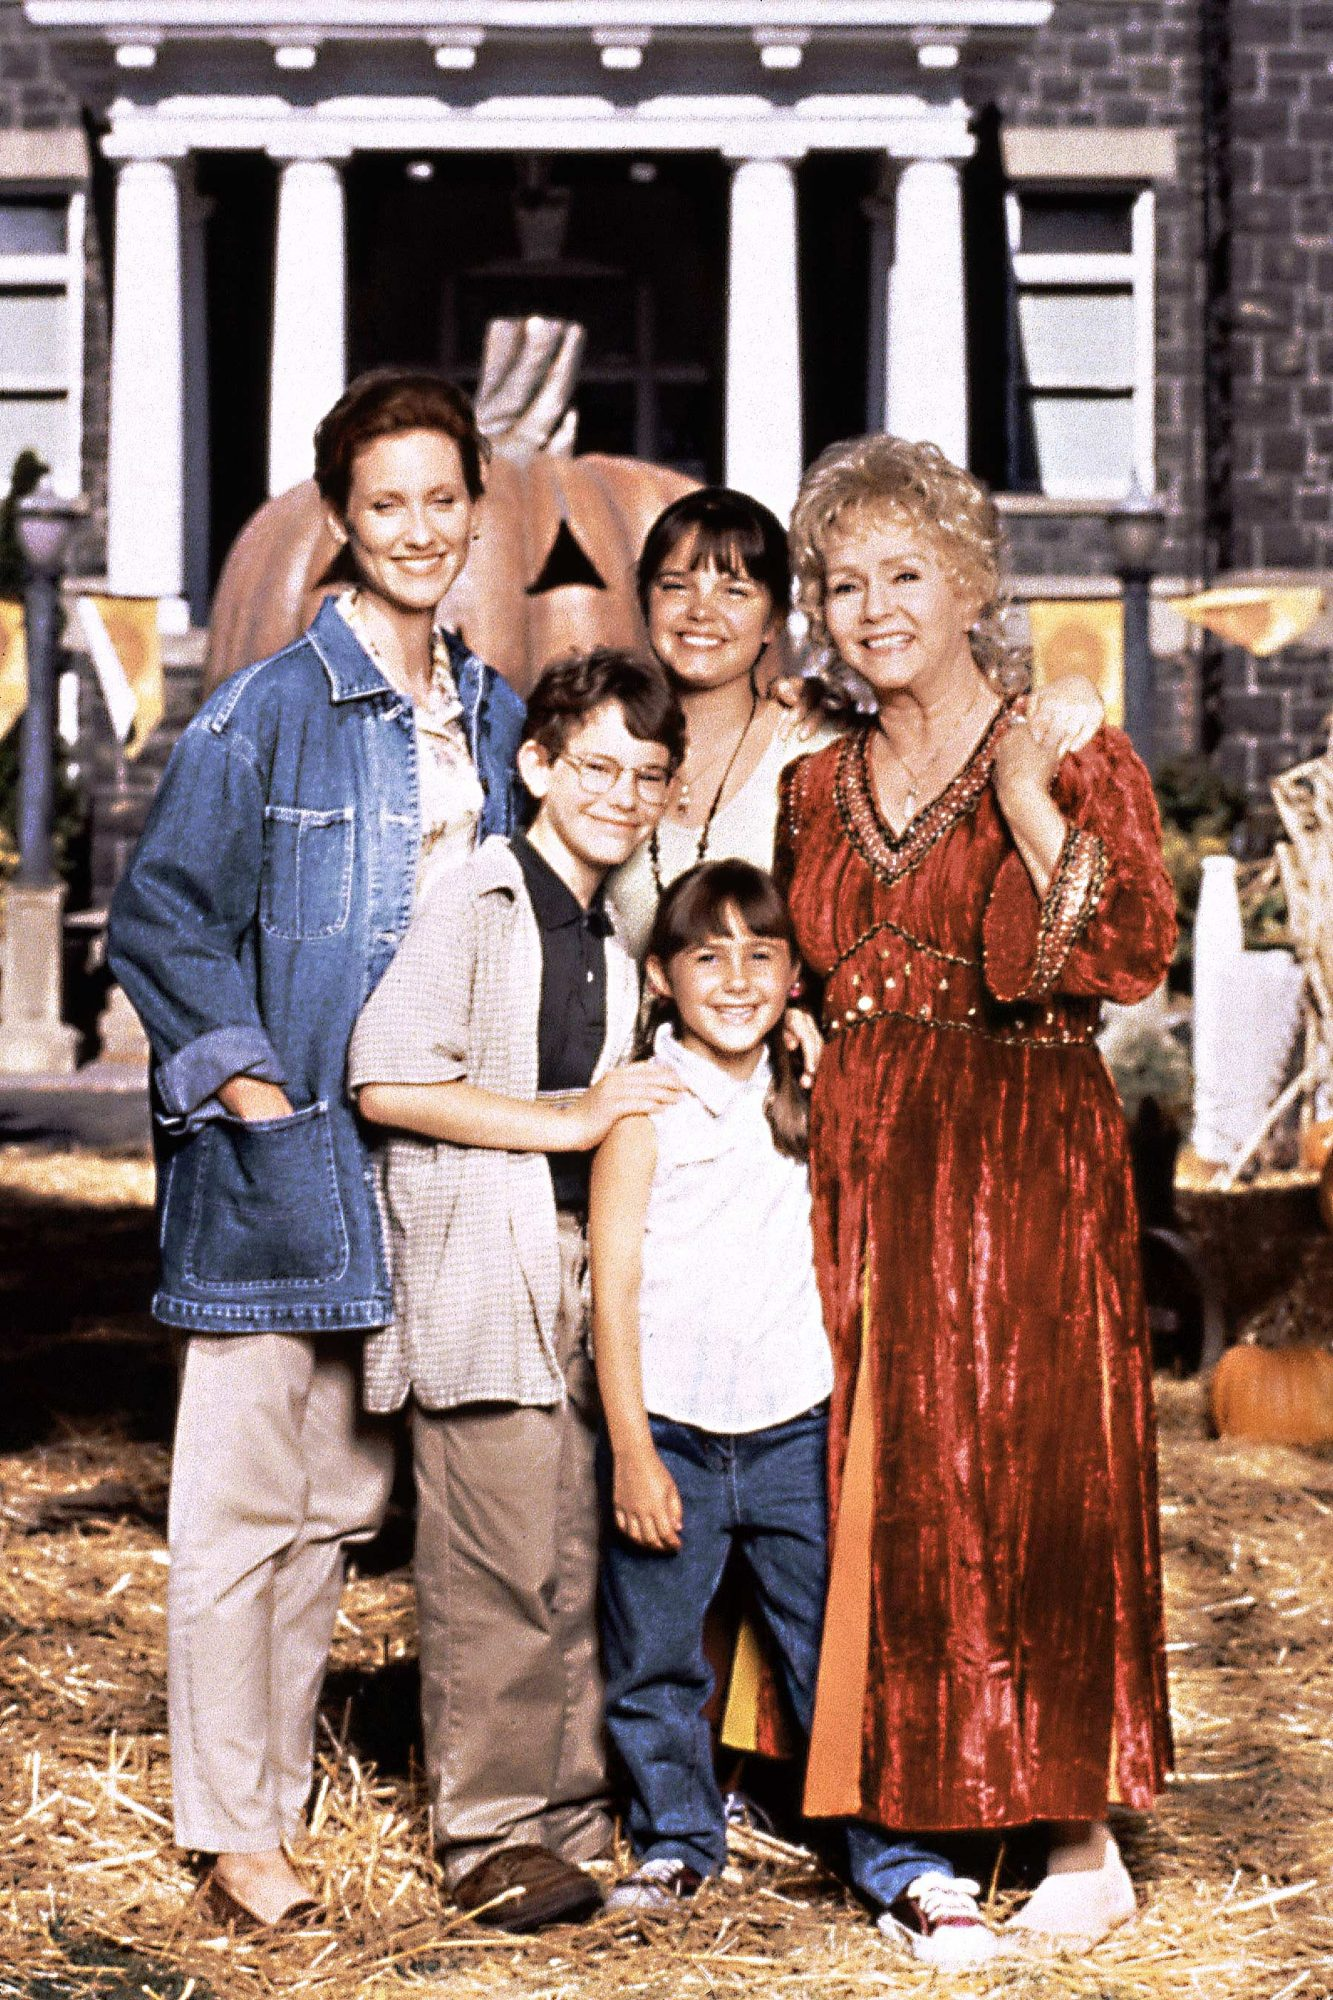 HALLOWEENTOWN, (from left): Judith Hoag, Joey Zimmerman, Kimberly J. Brown, Emily Roeske, Debbie Rey